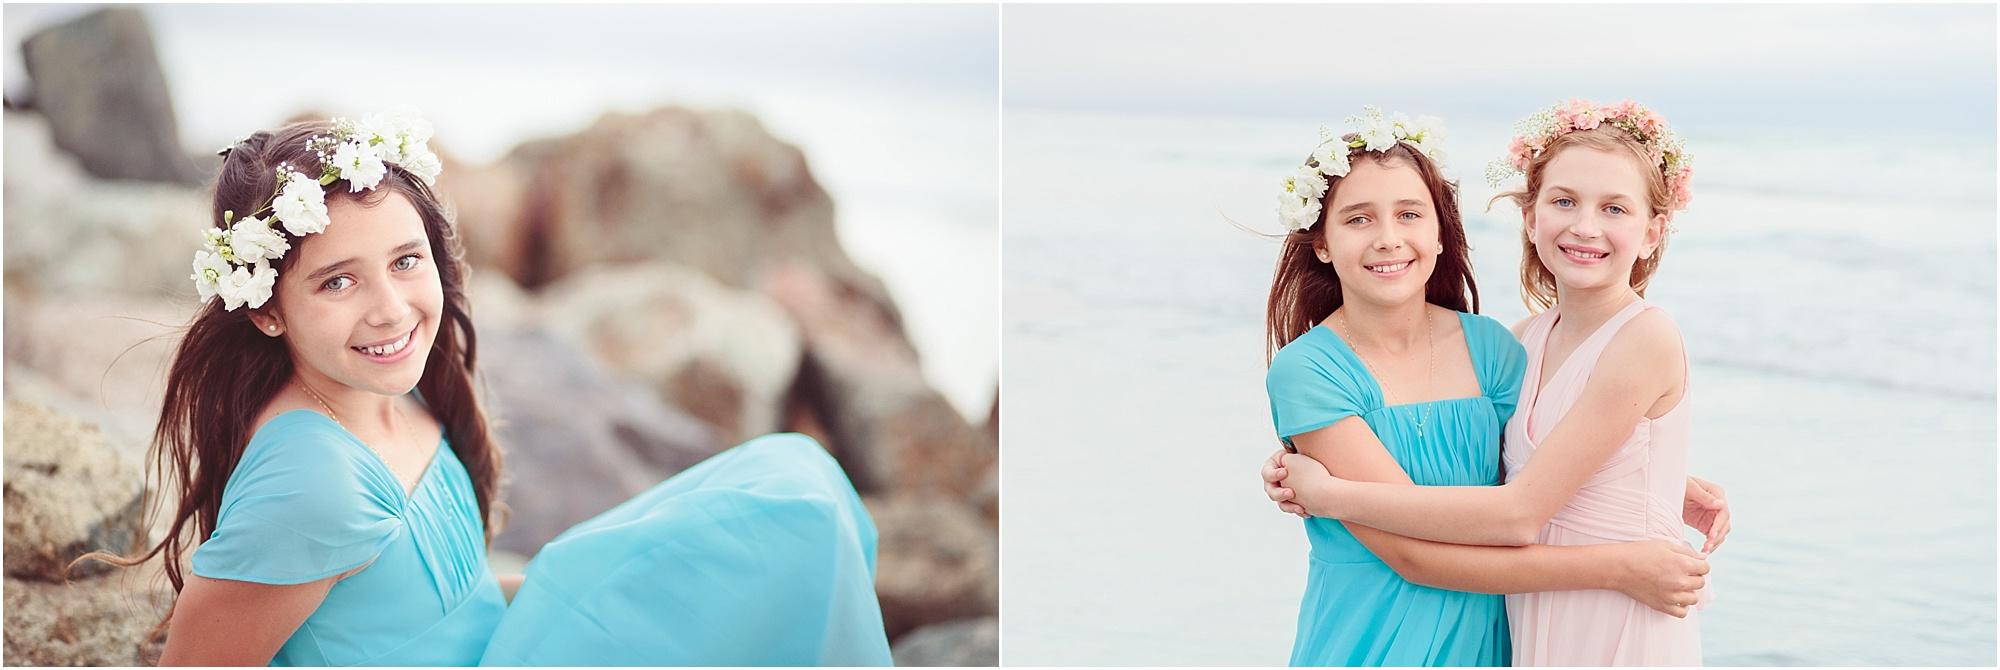 San Diego Tween Photography | Beach Portraits